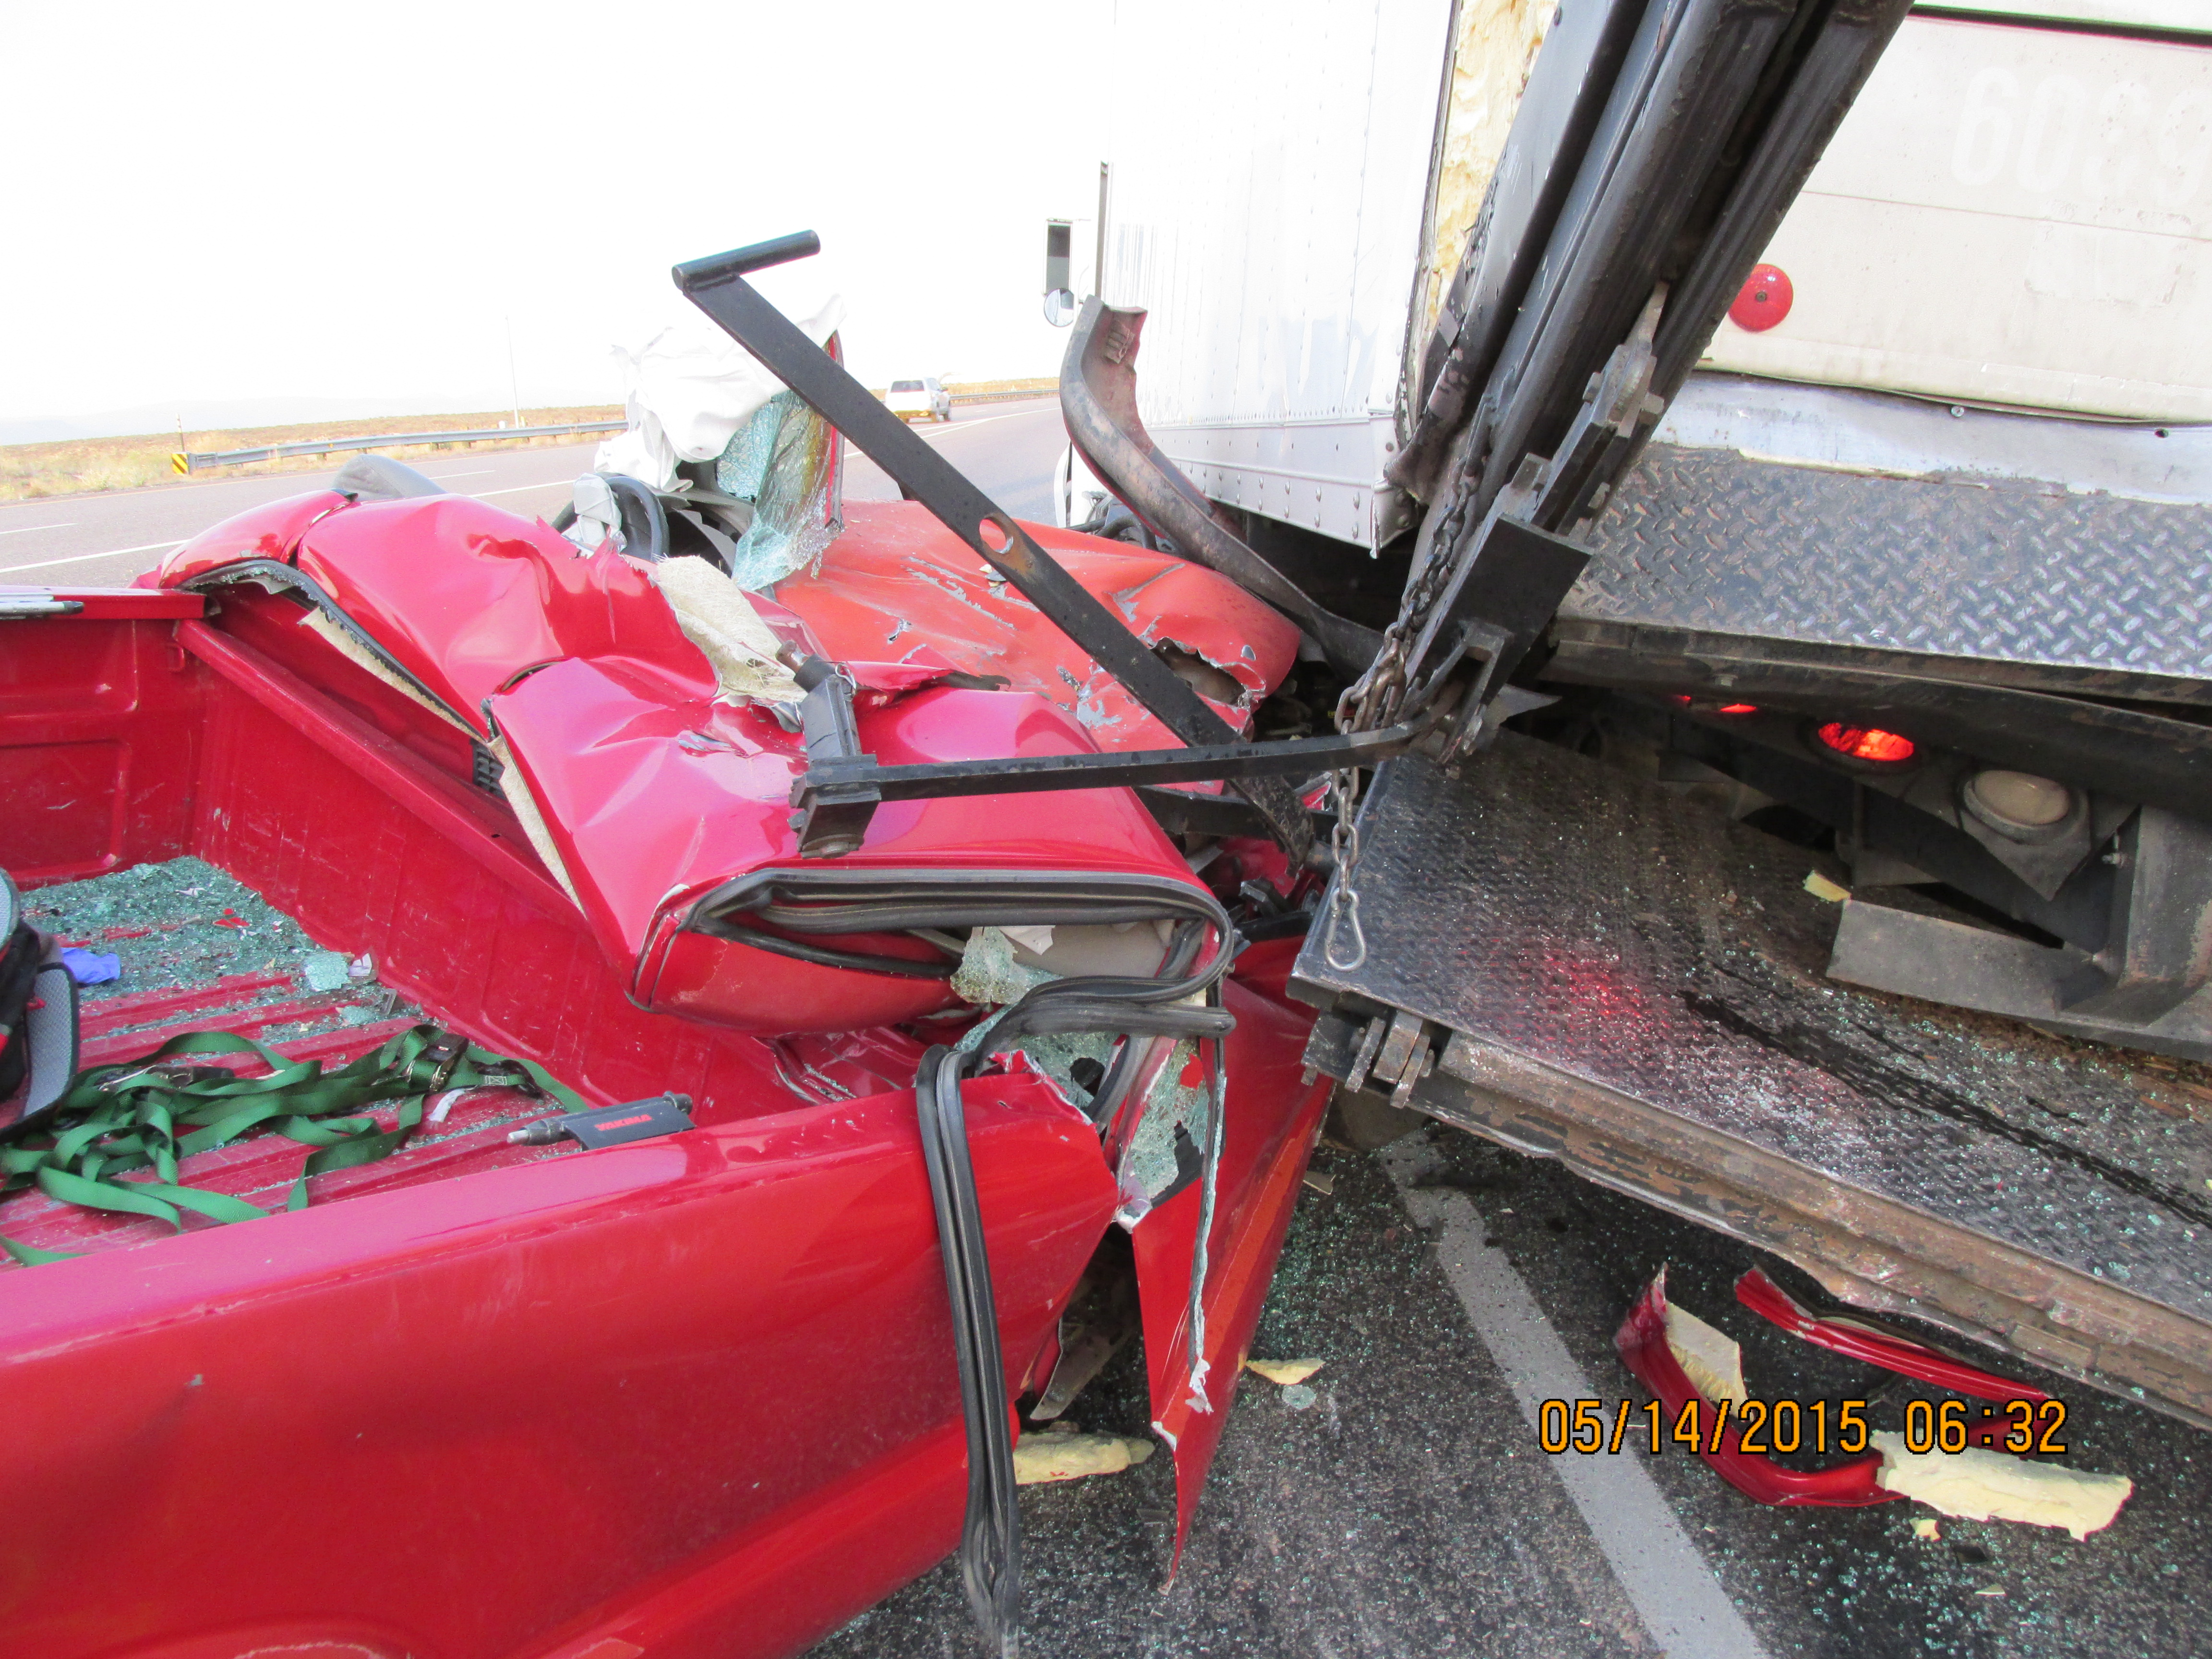 The driver of a Sonoma pickup truck was transported to the hospital after smashing into the back of a Tropic Ice truck near Interstate 15 Exit 16, Washington County, Utah, May 13, 2015 | Photo courtesy of the Utah Highway Patrol